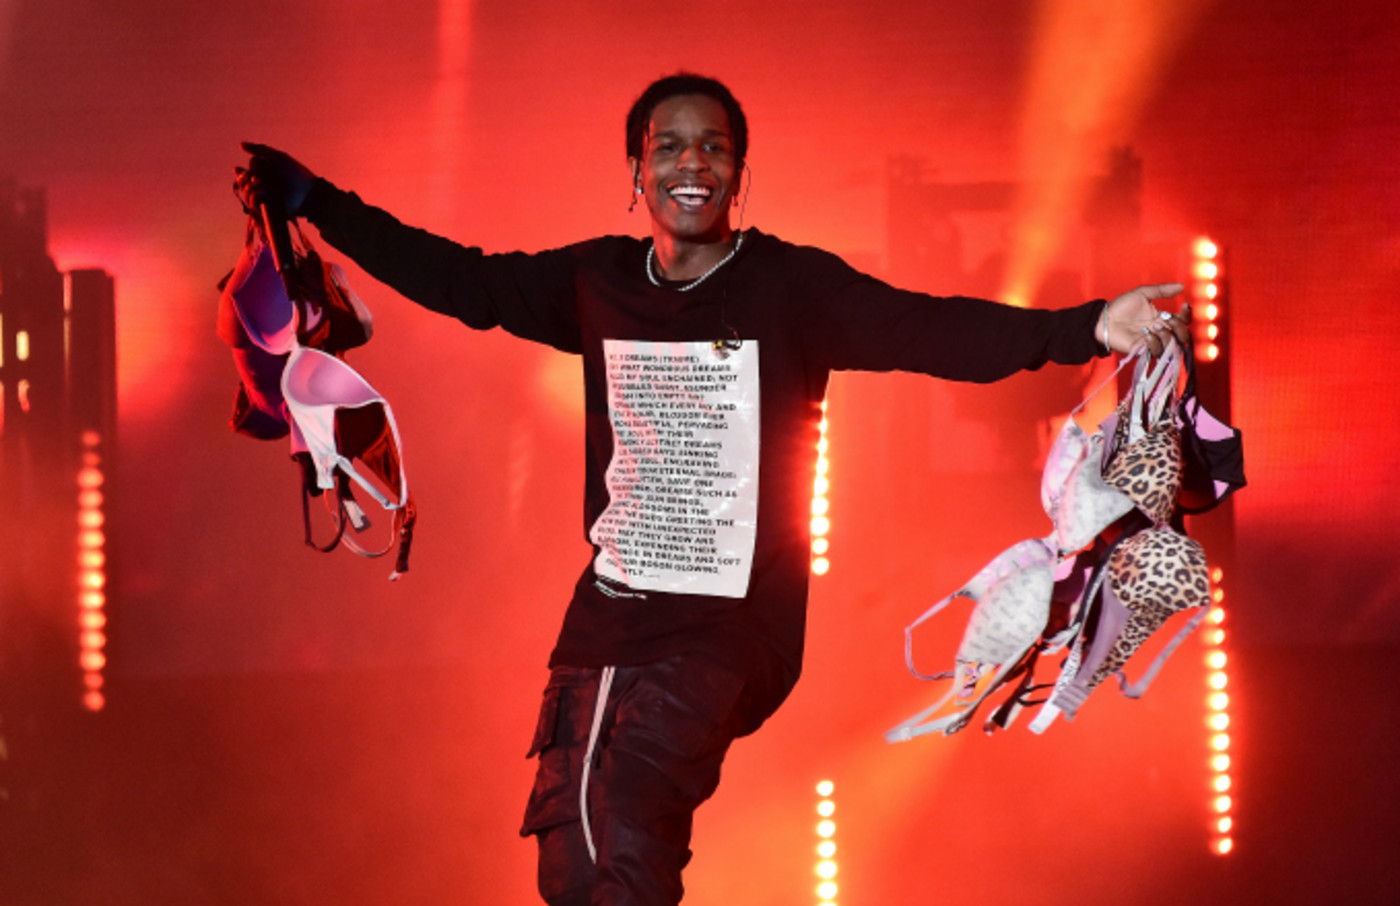 A$AP Rocky performs live during Rolling Loud music festival